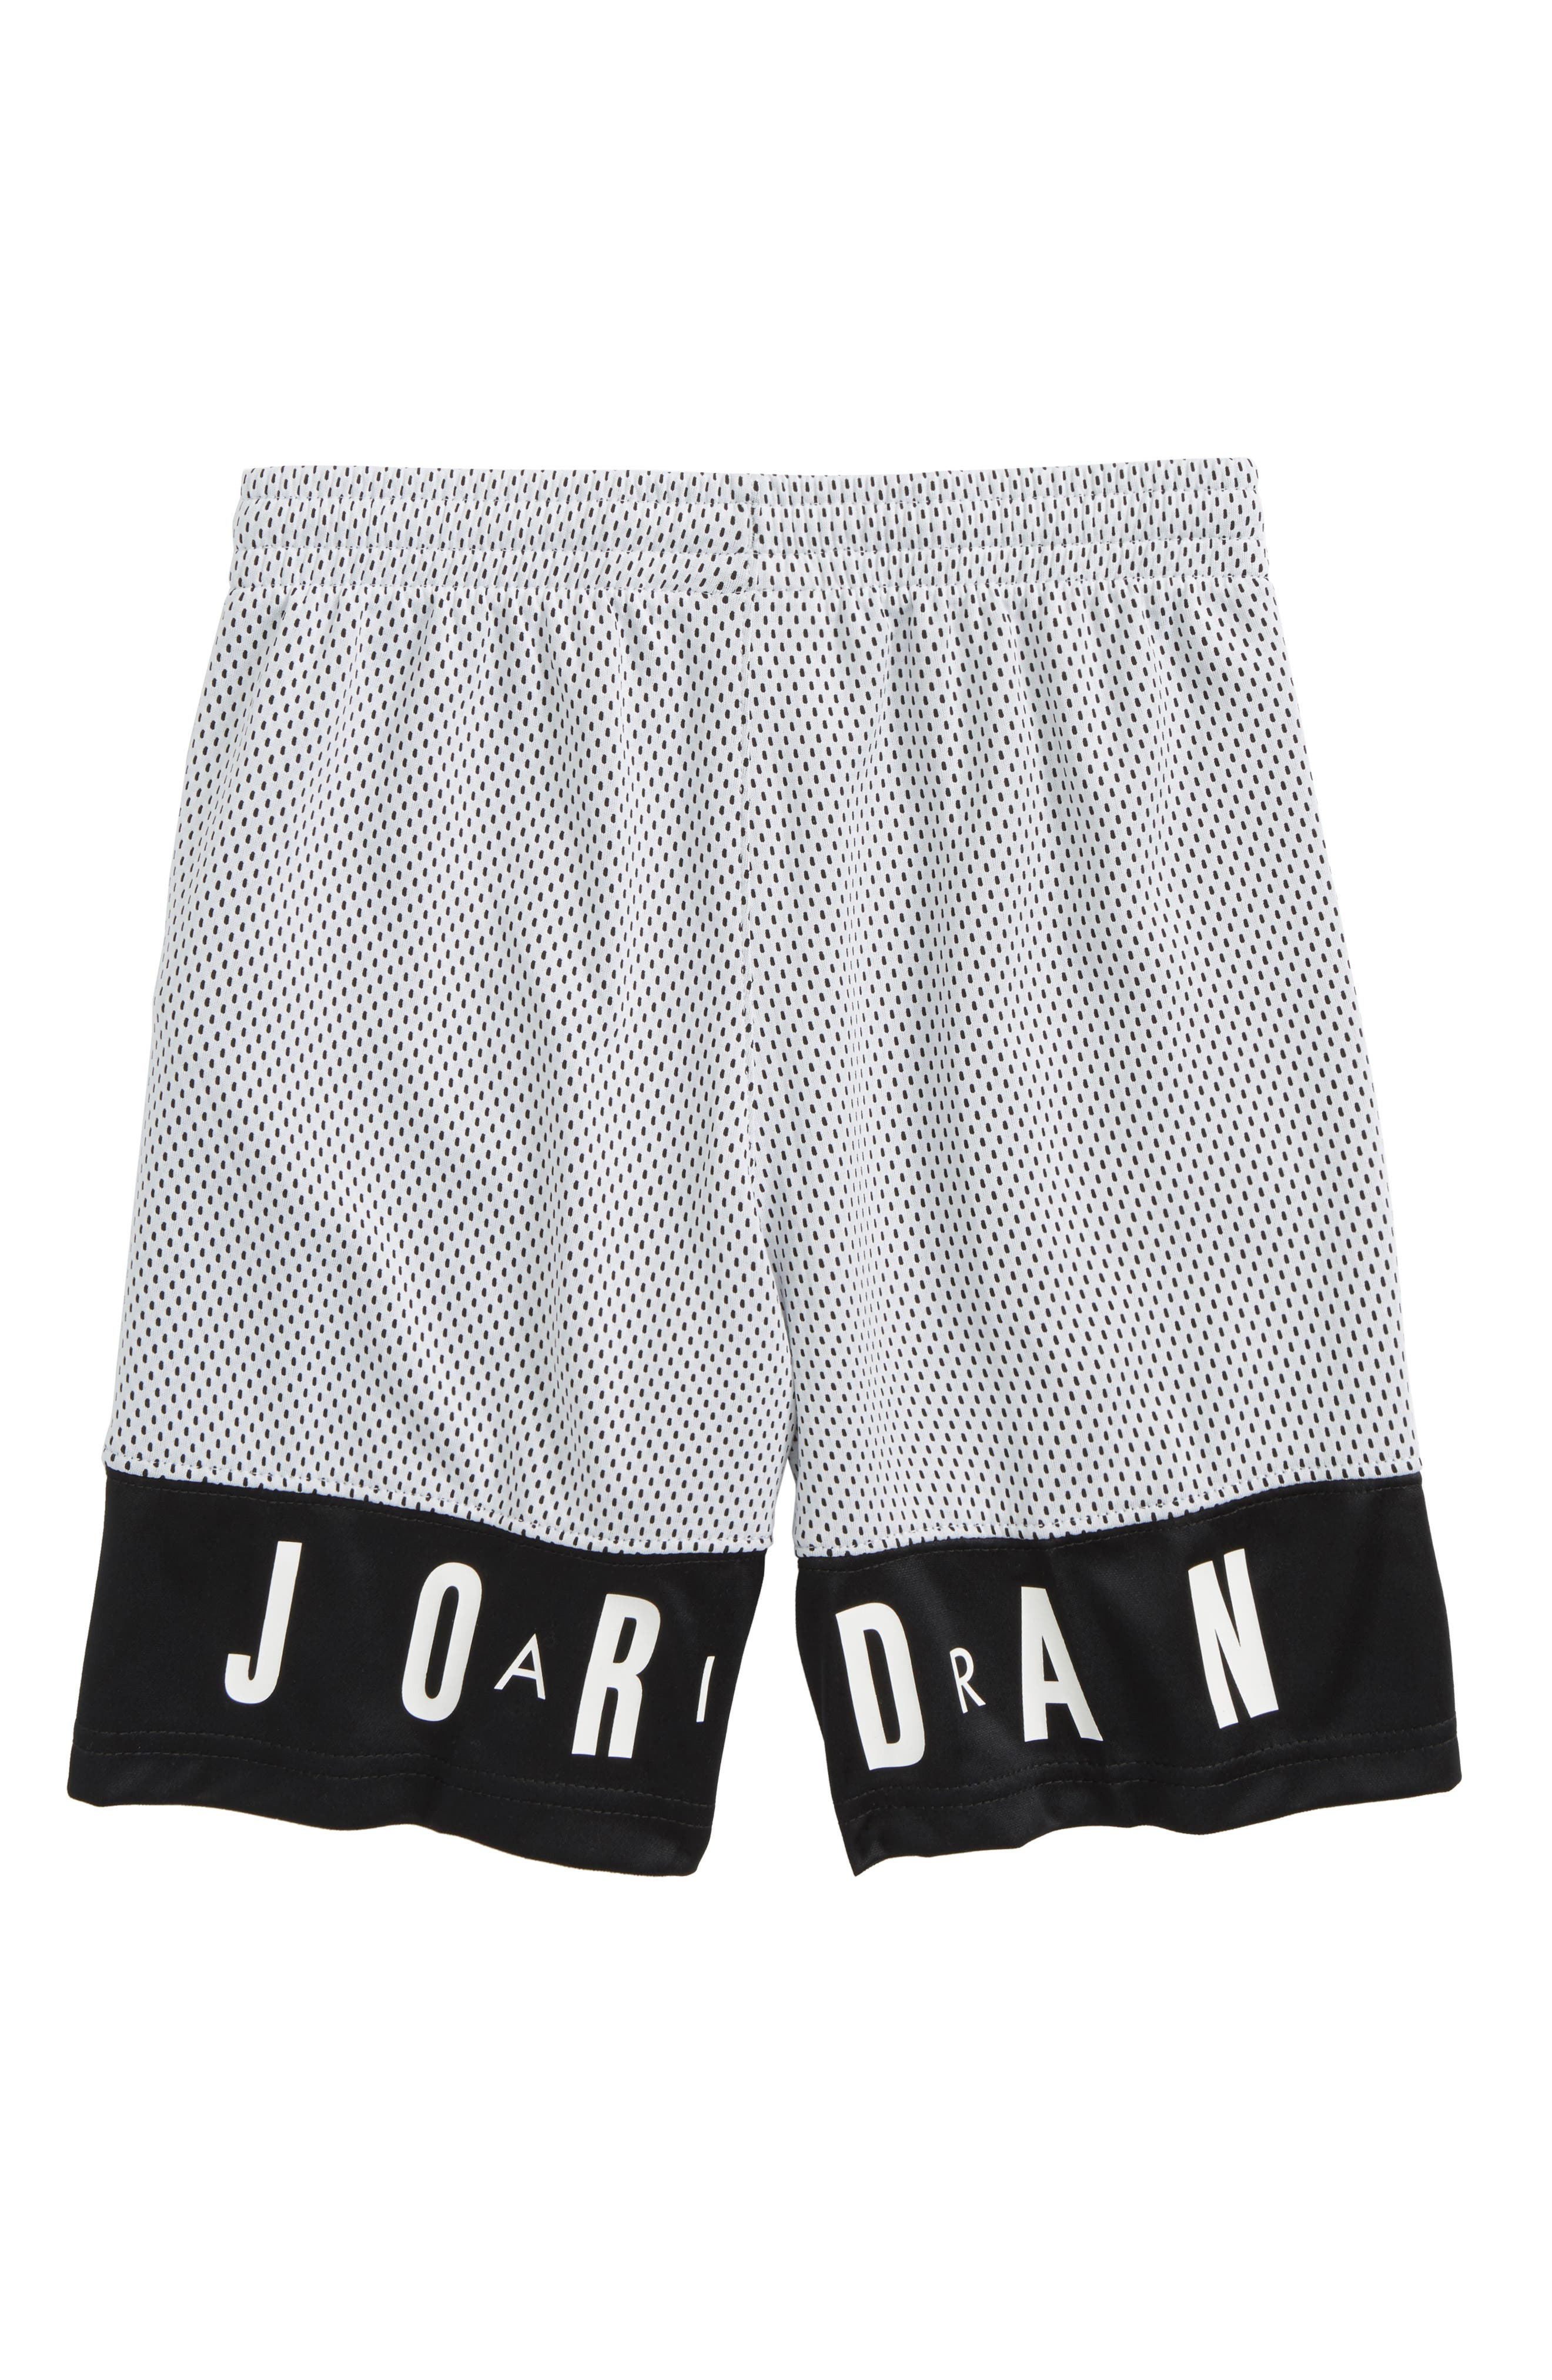 Jordan '90s Mesh Shorts,                             Alternate thumbnail 2, color,                             Black/ White